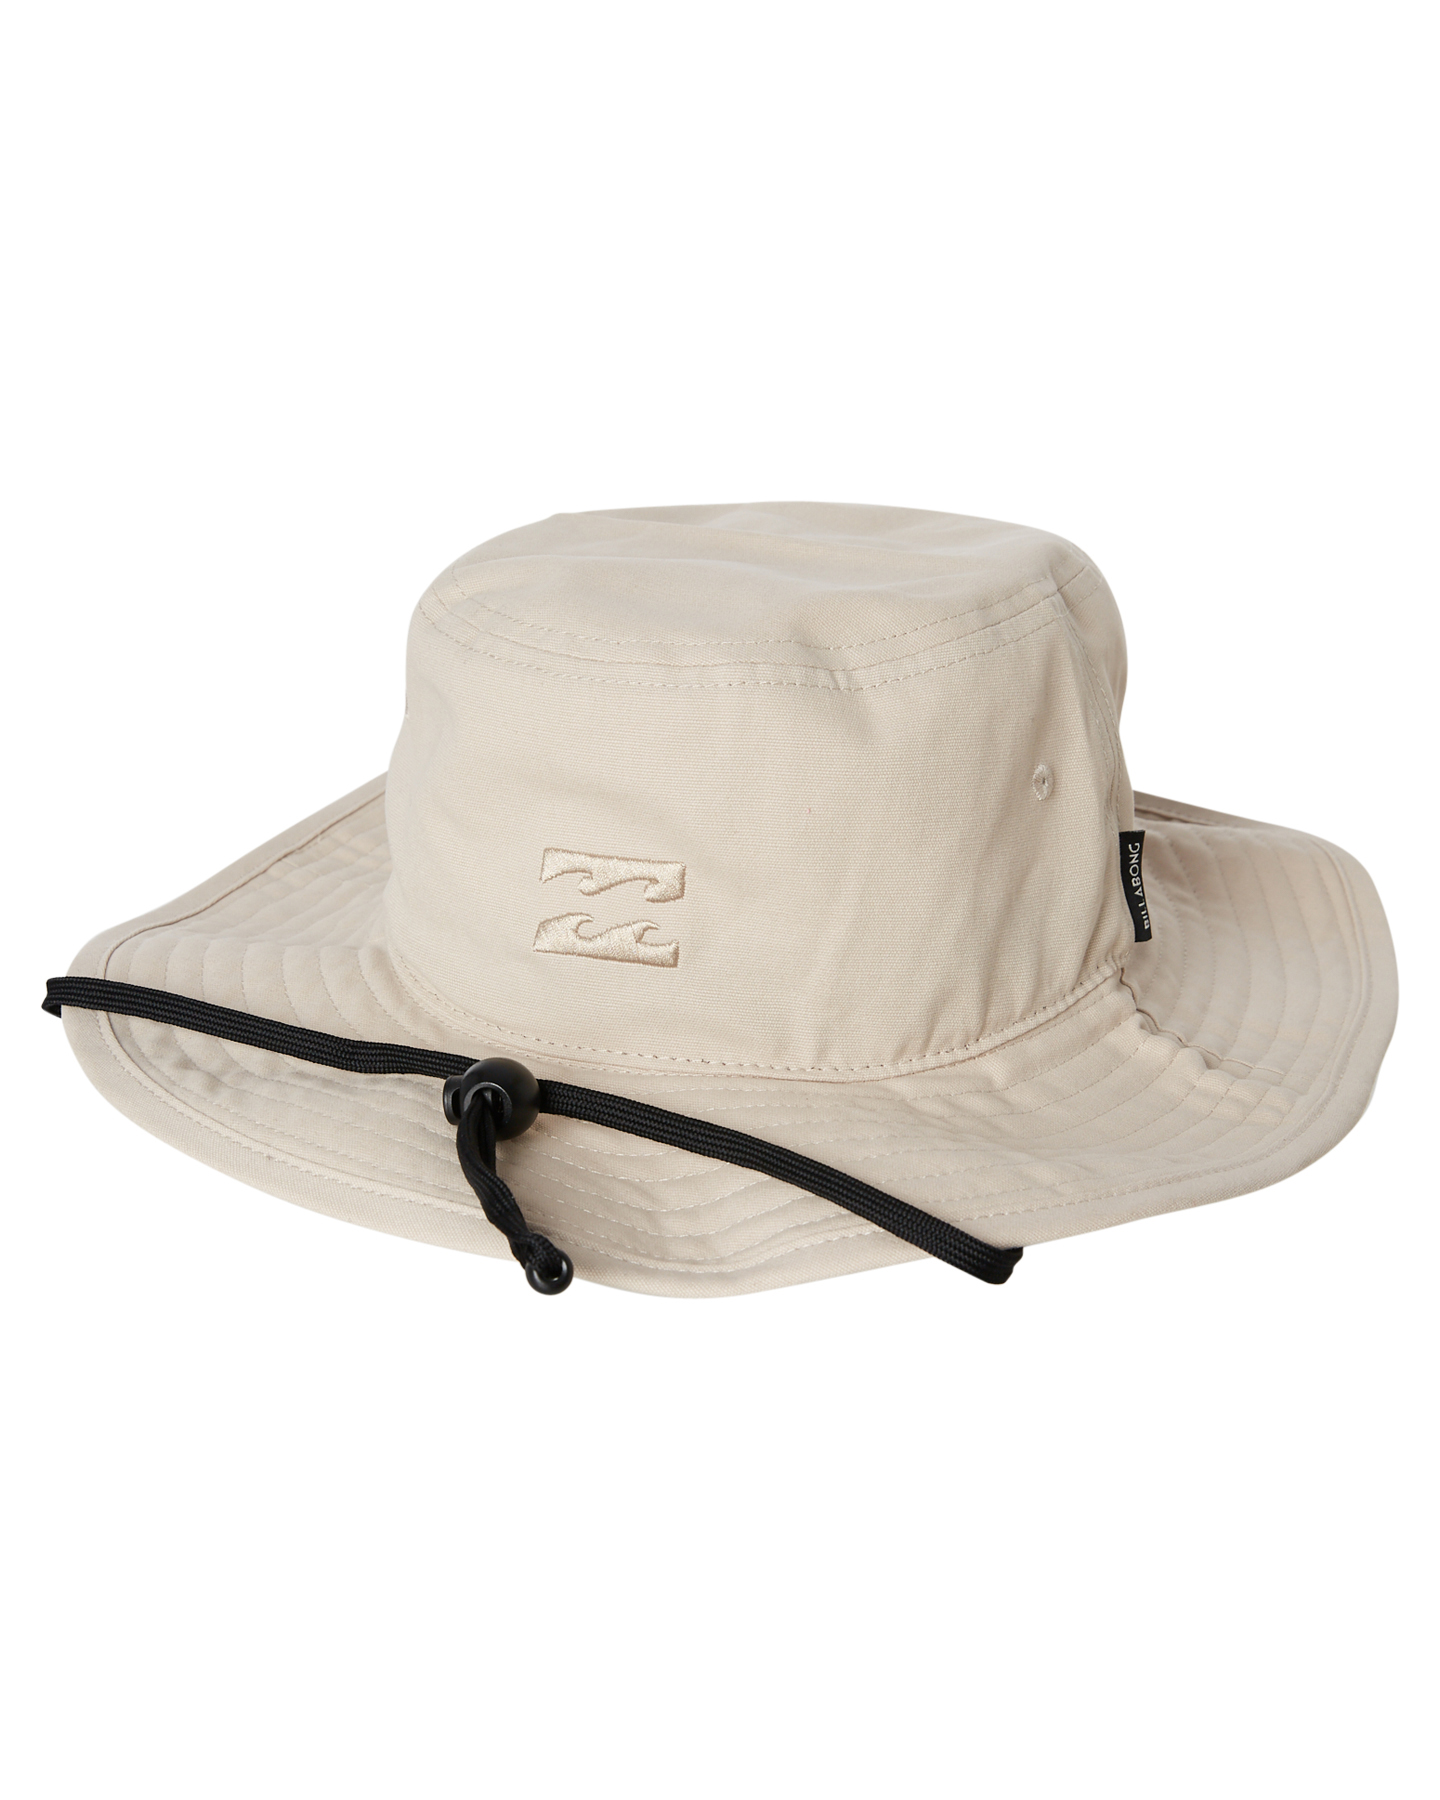 Details about New Billabong Men s Big John Hat Cotton Brown 4c4649fadca8